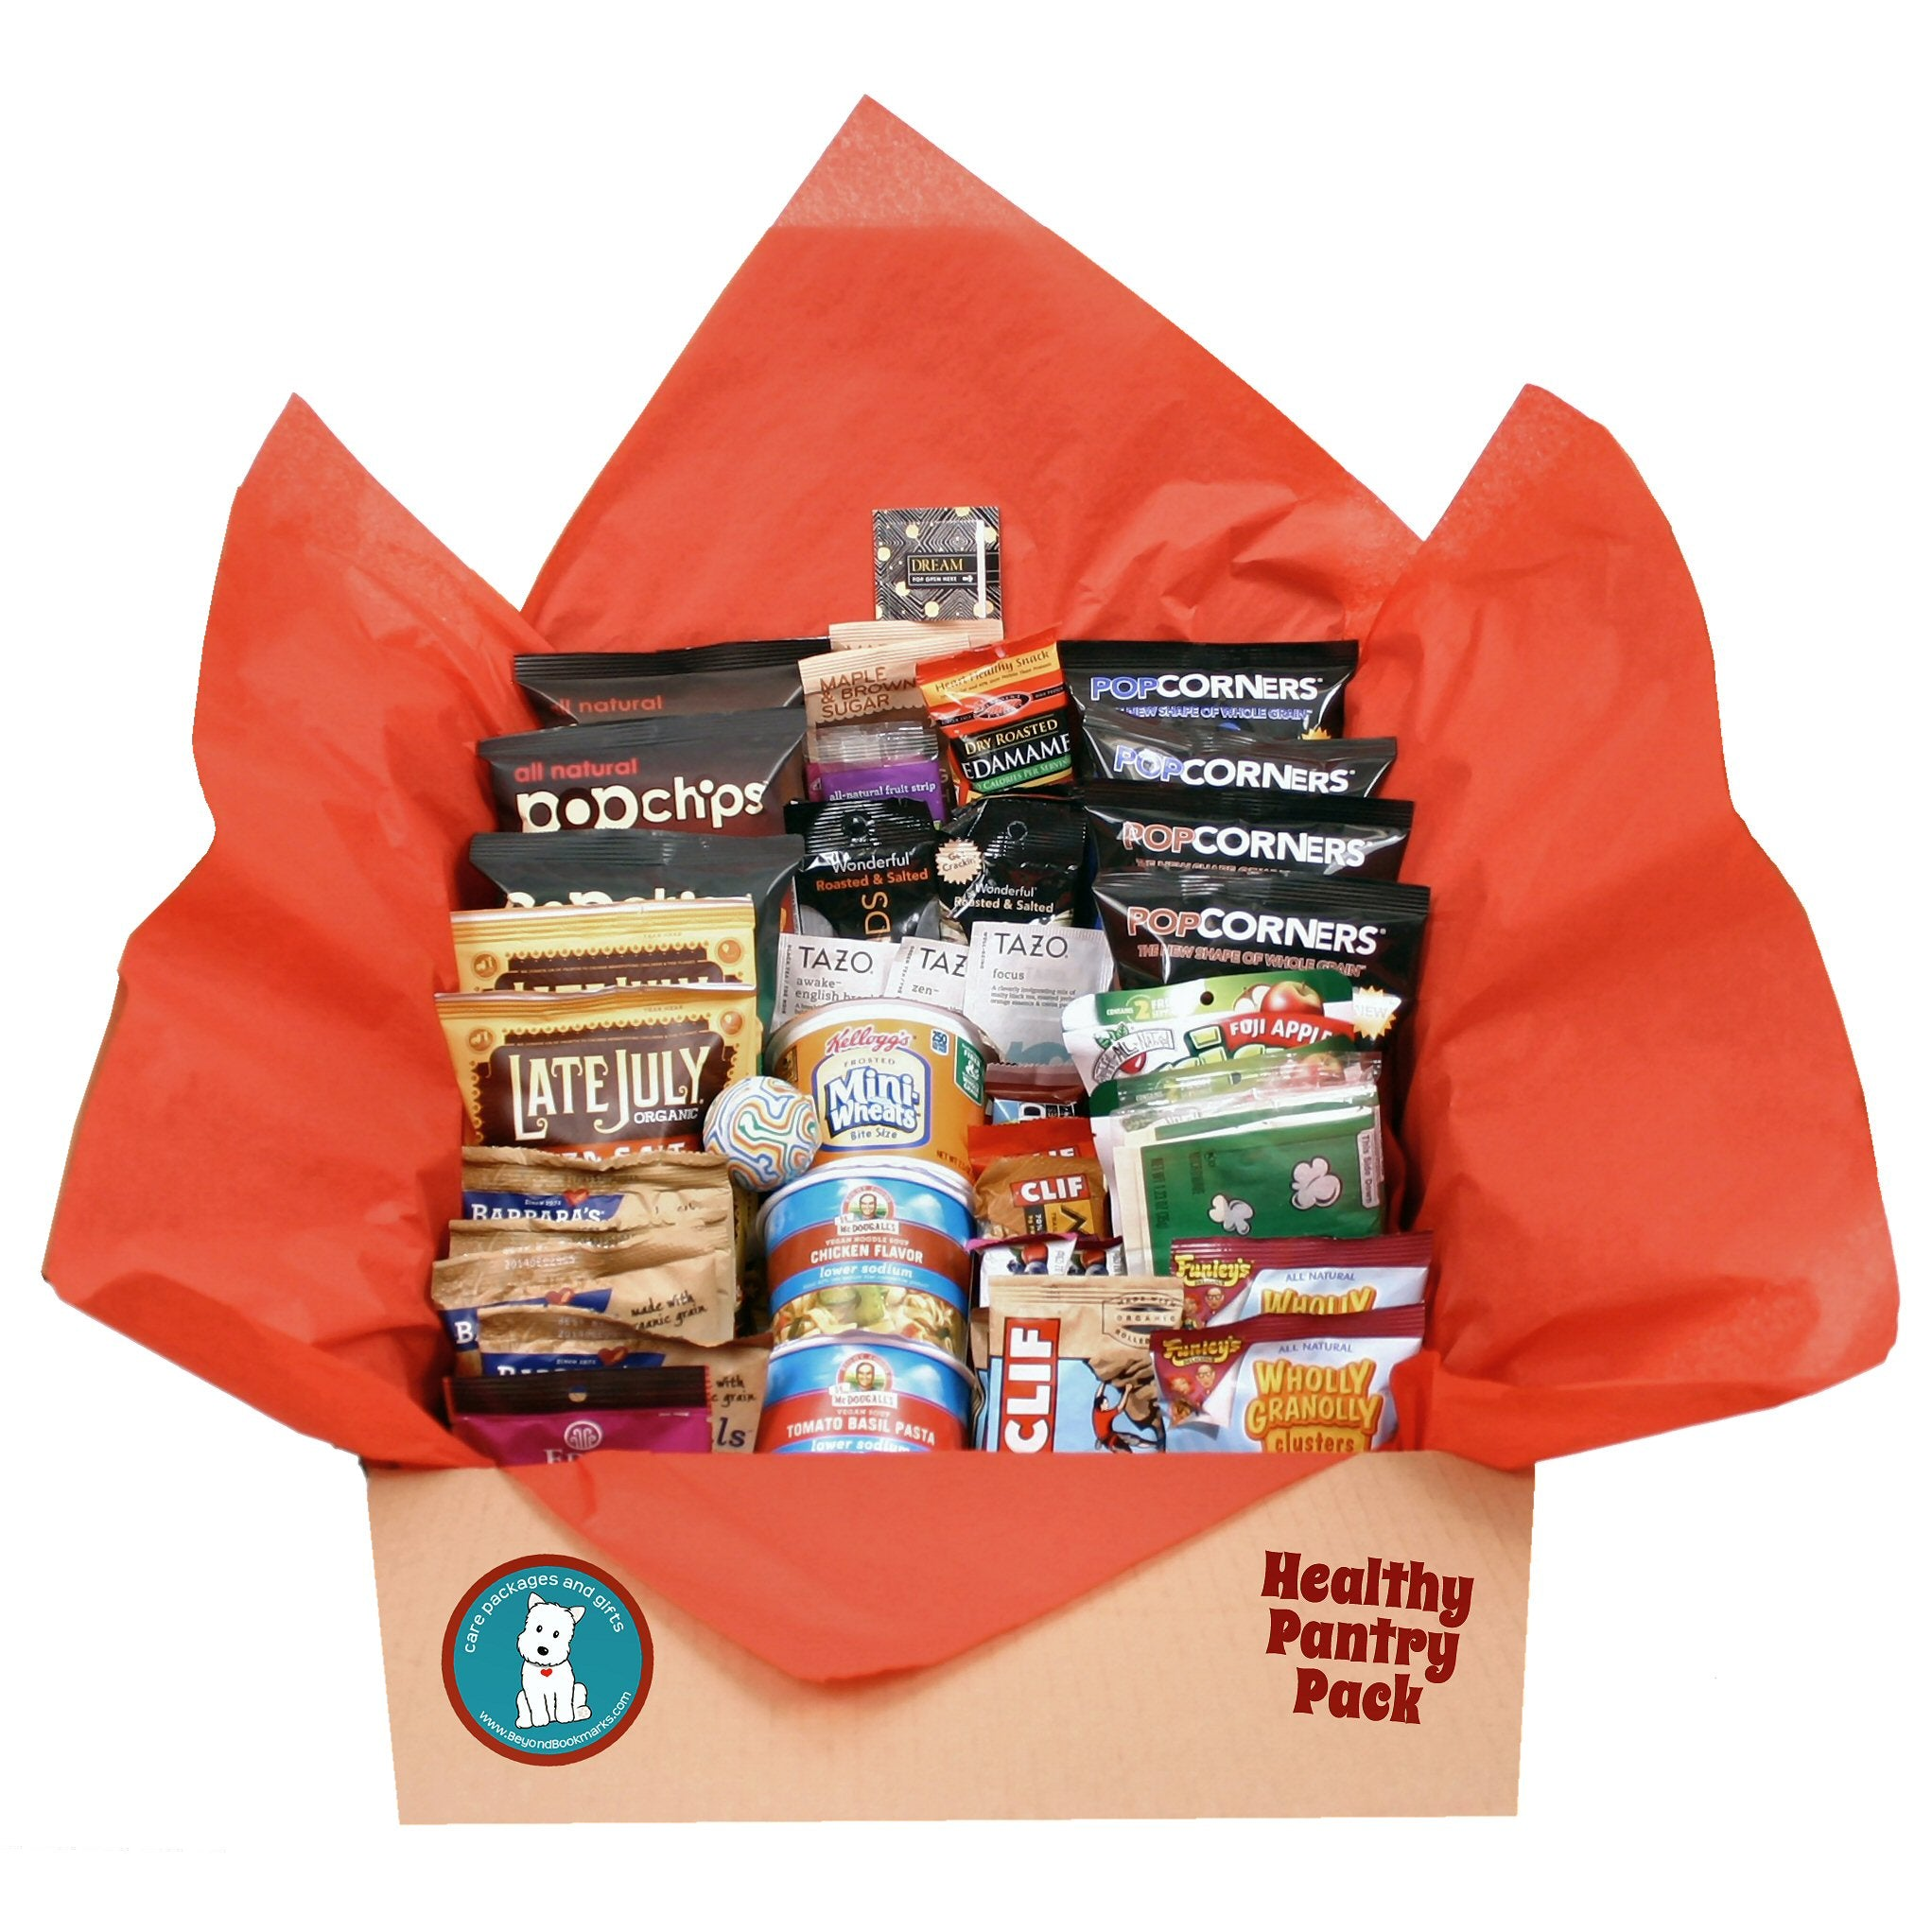 Healthy Pantry Pack - Over 40 Snacks - beyondbookmarks.com